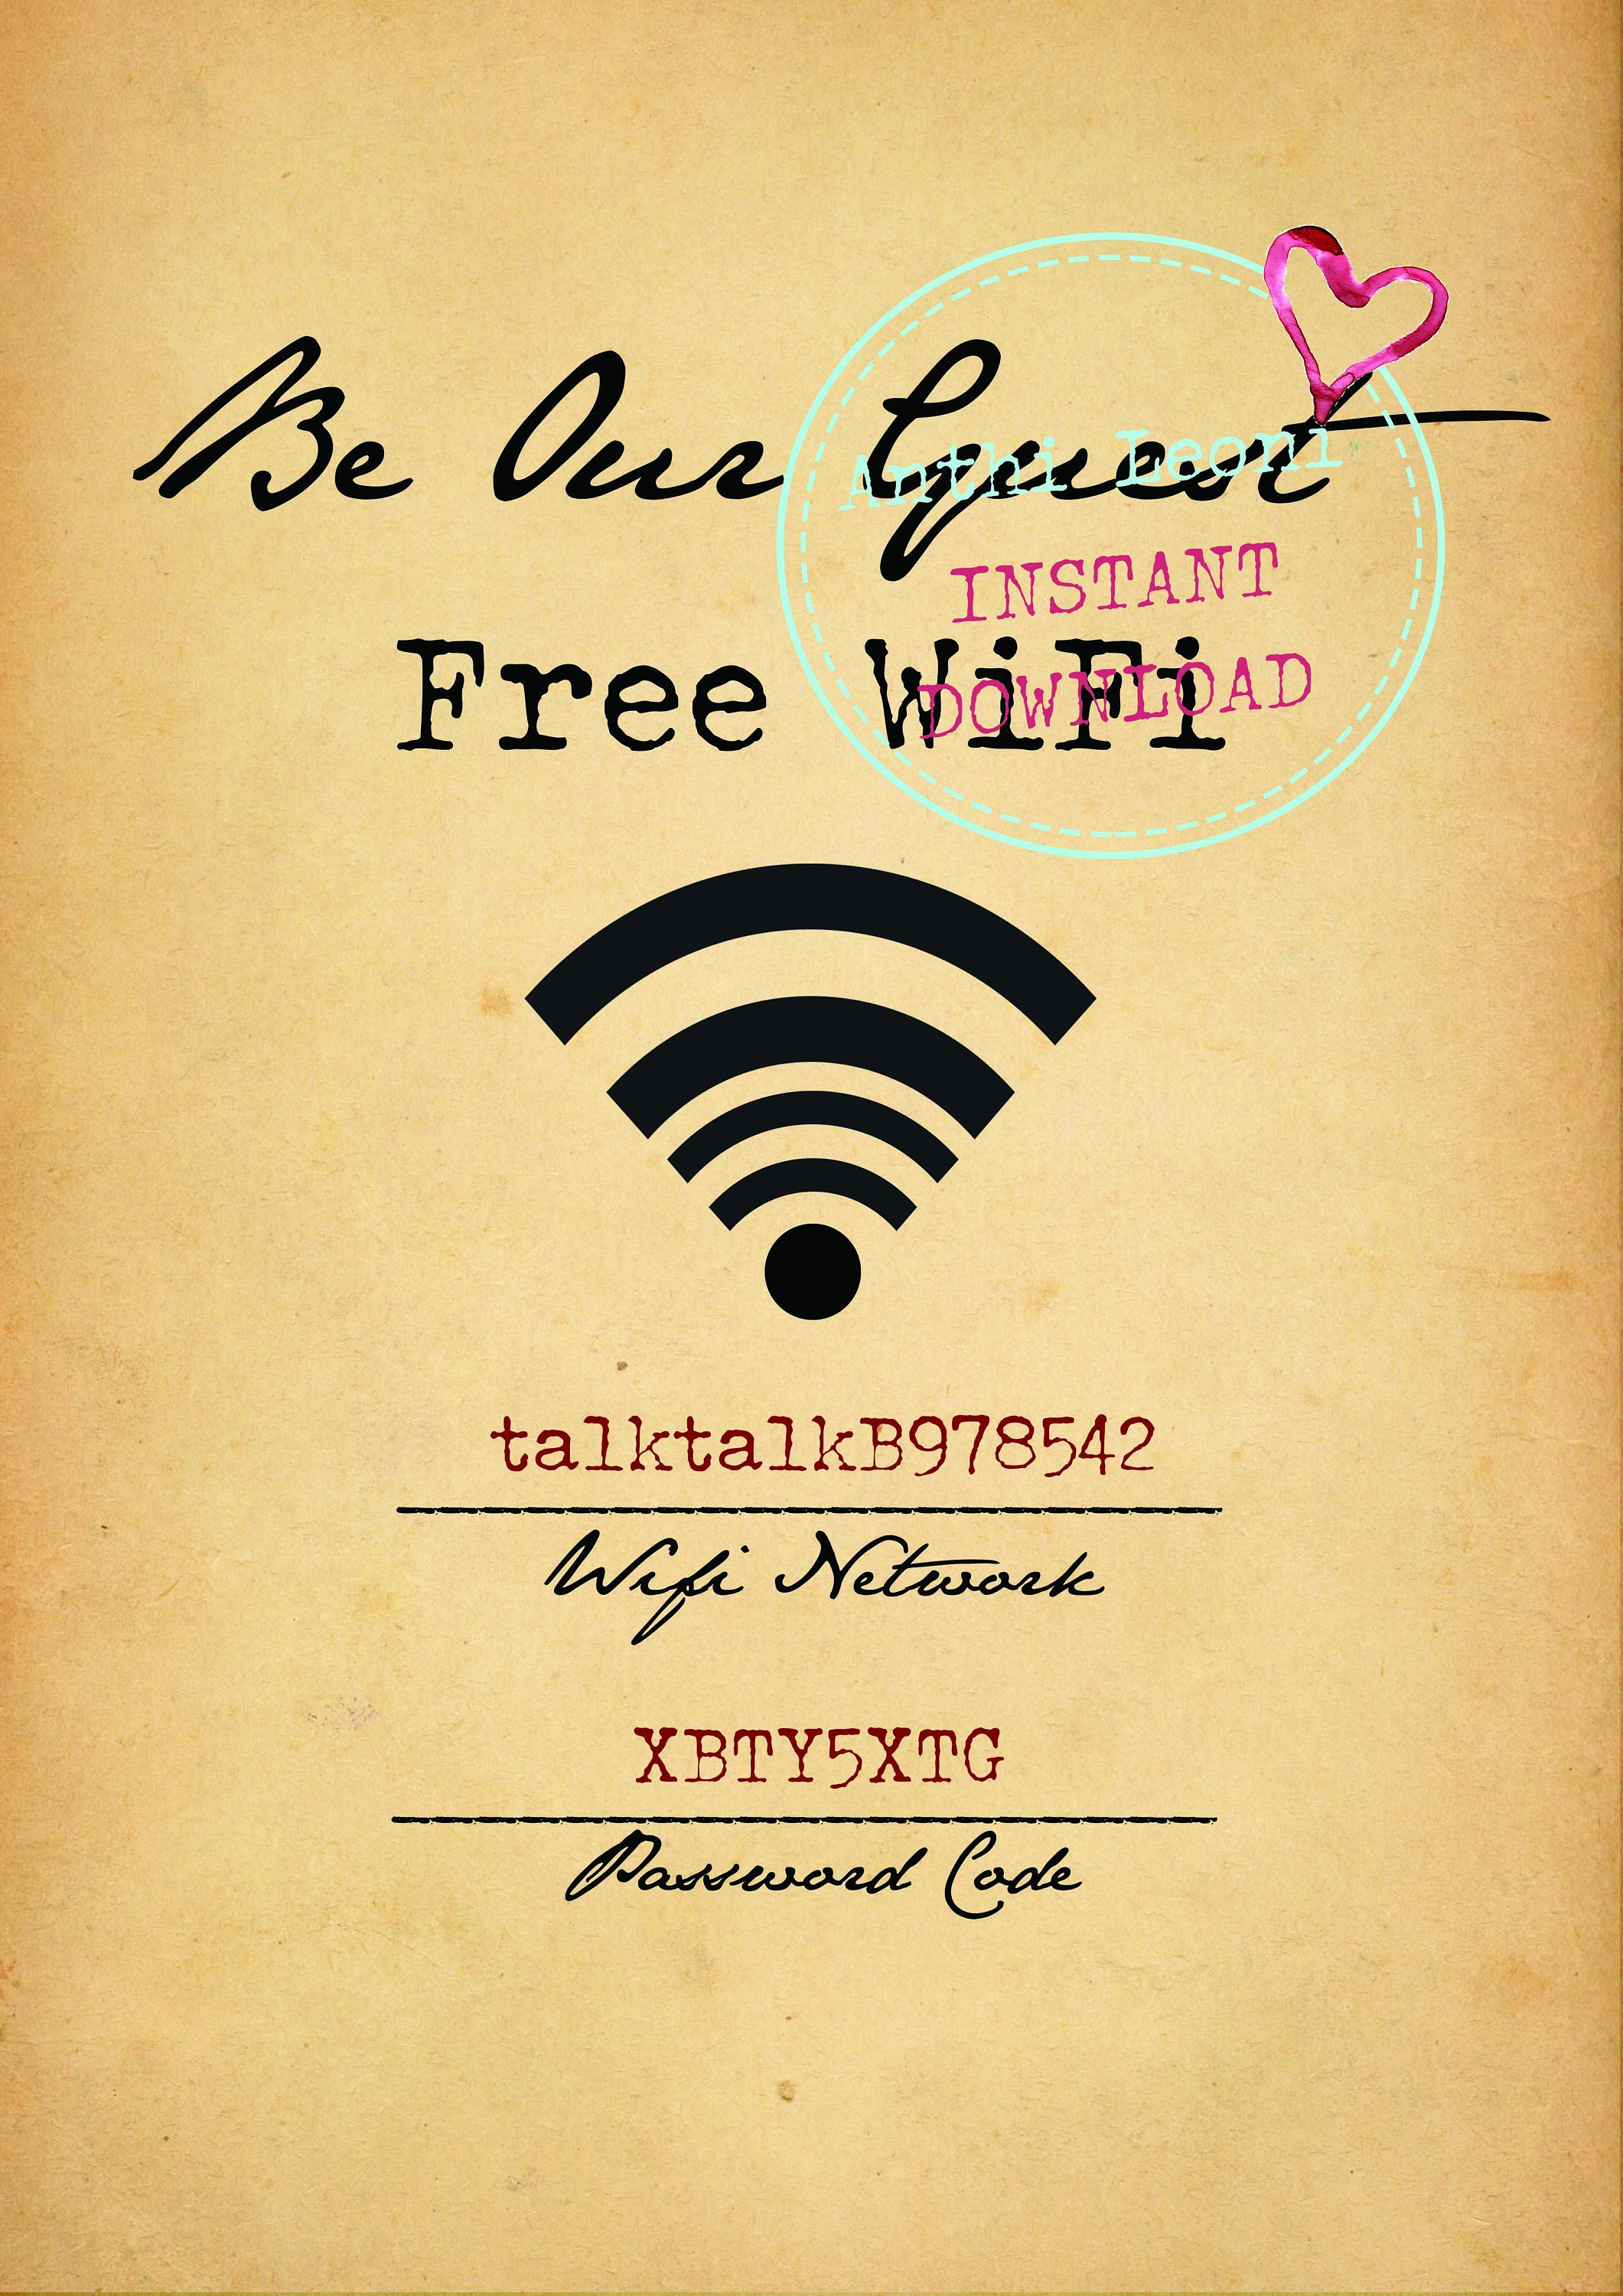 photo about Wifi Password Sign Printable called Wifi Pword Printable Be Our Visitor Absolutely free Wifi Printable